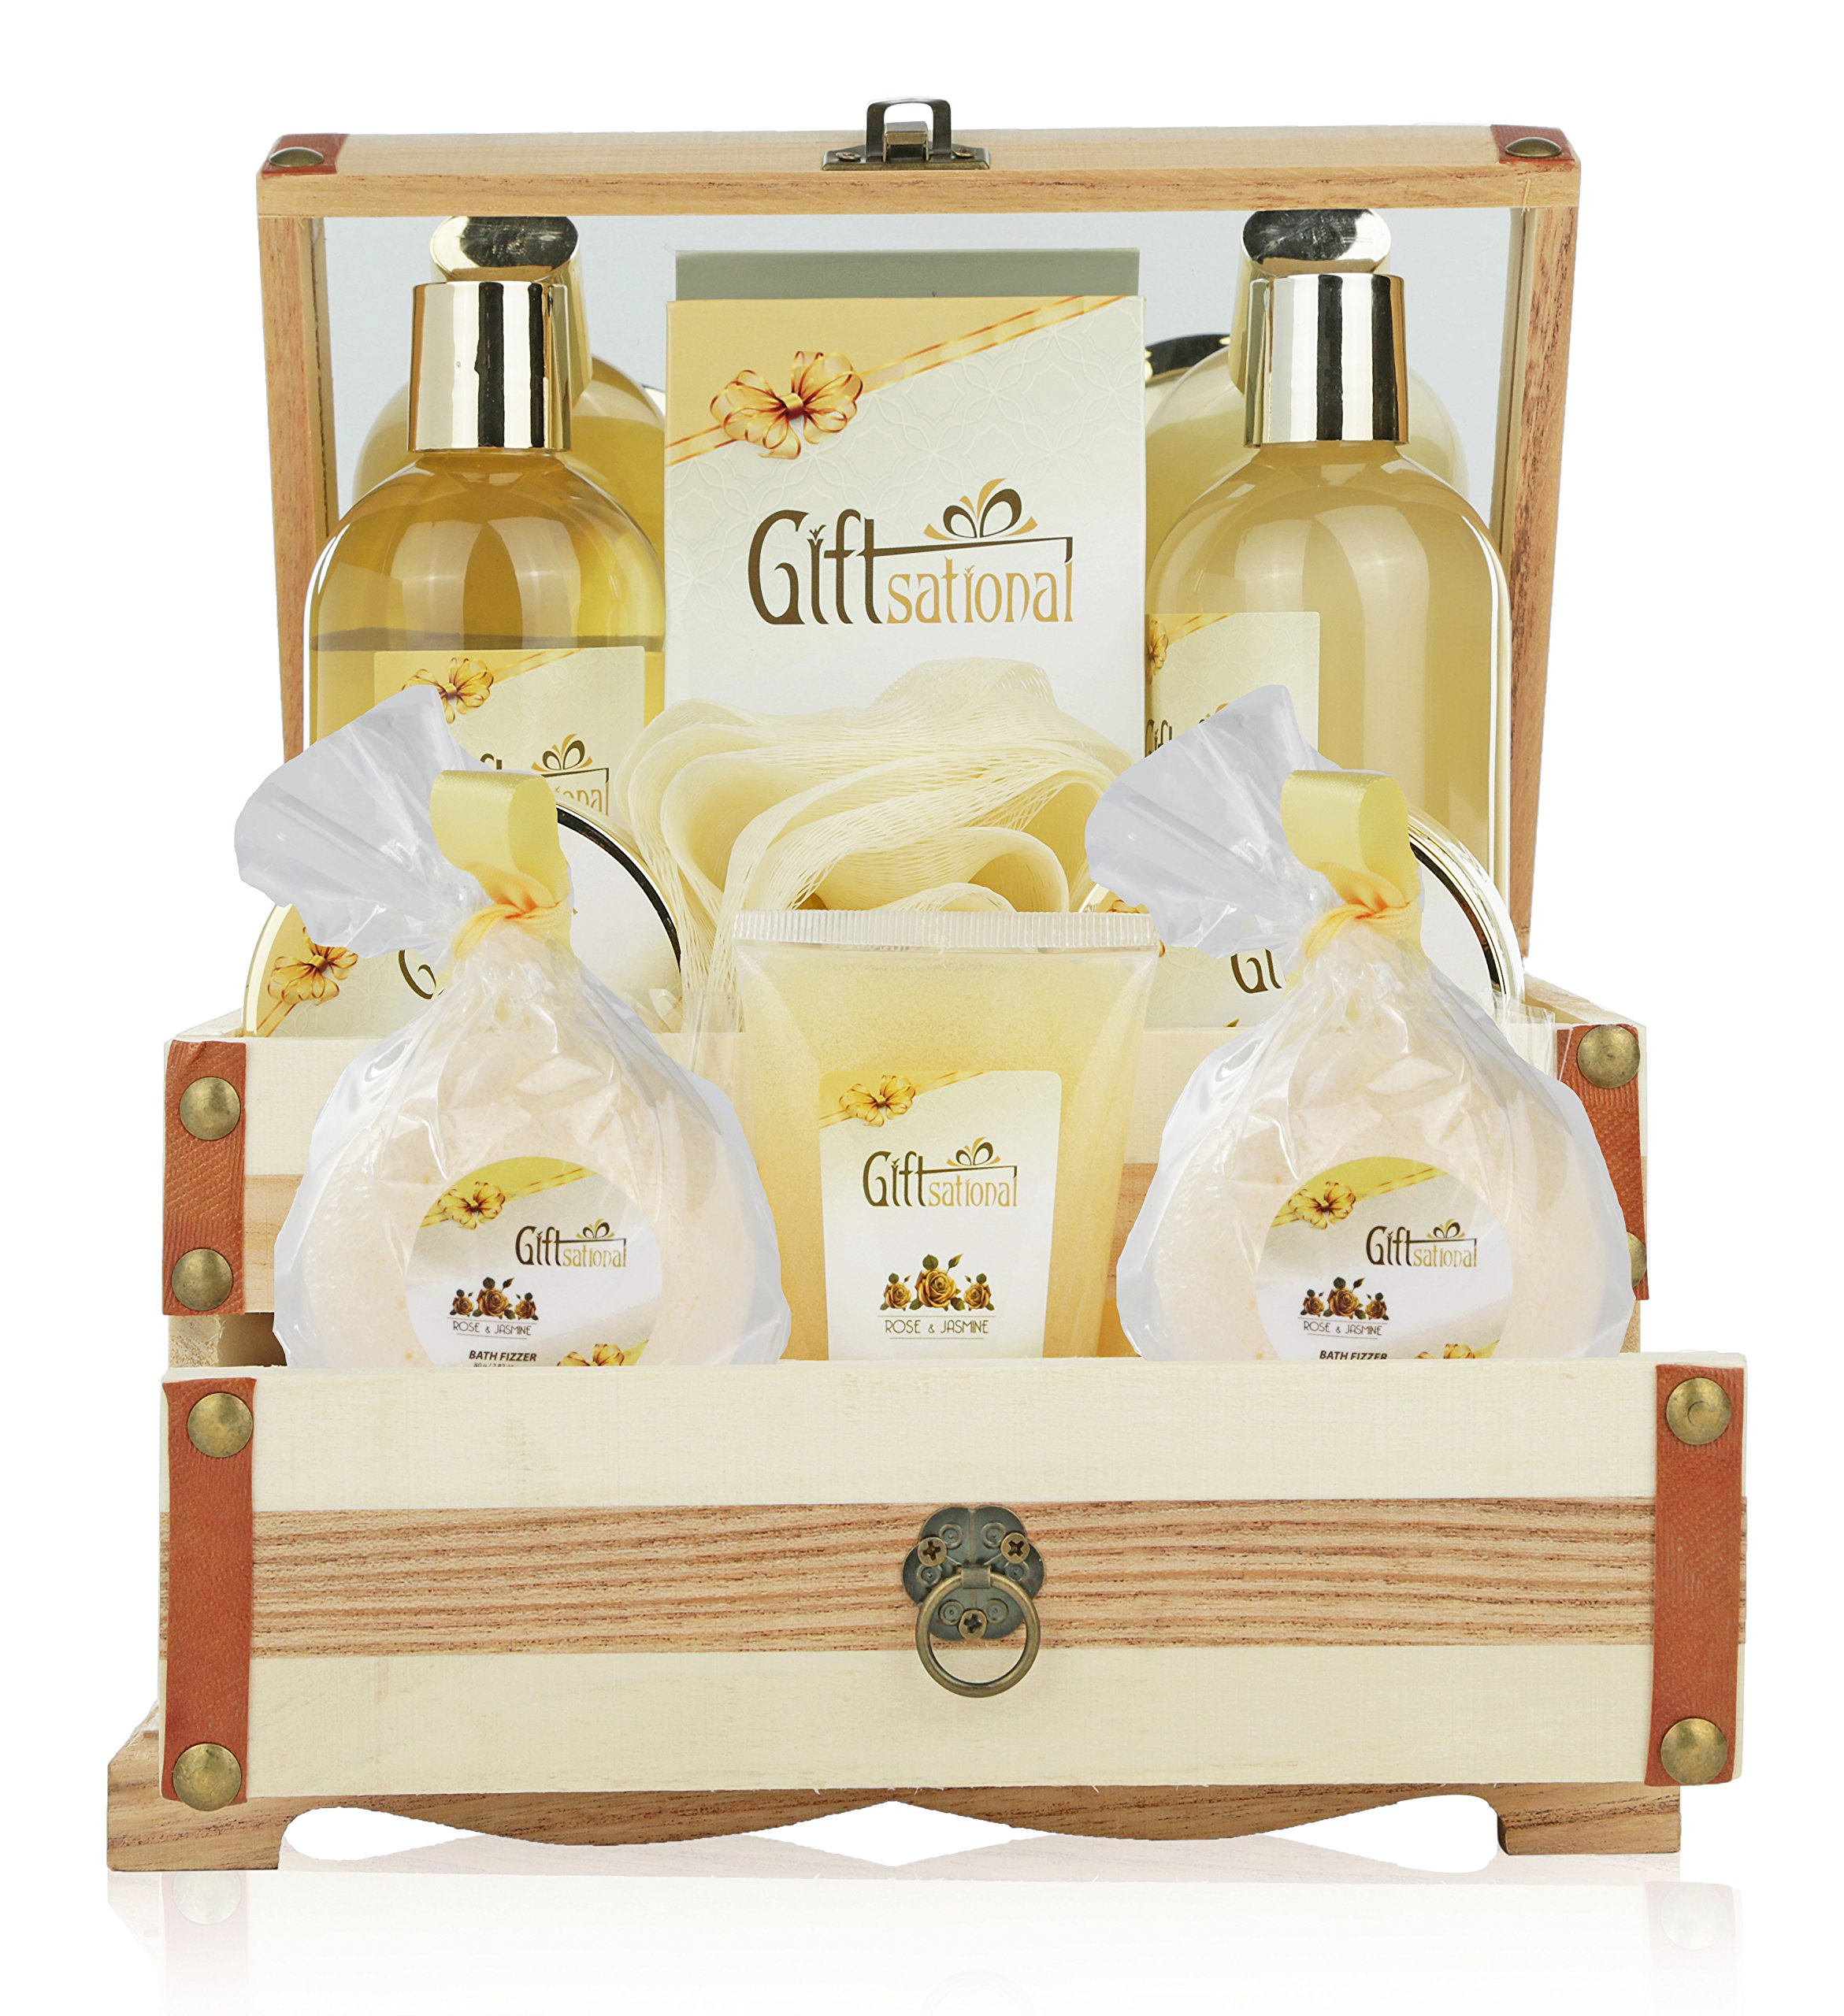 Spa Gift Basket Refreshing Rose & Jasmine Fragrance, Beautiful Wooden Gift Box with Mirror, Perfect Wedding, Birthday or Anniversary Gift, Bath gift Set Includes Shower Gel, Bath Bombs and More! by Giftsational (Image #4)